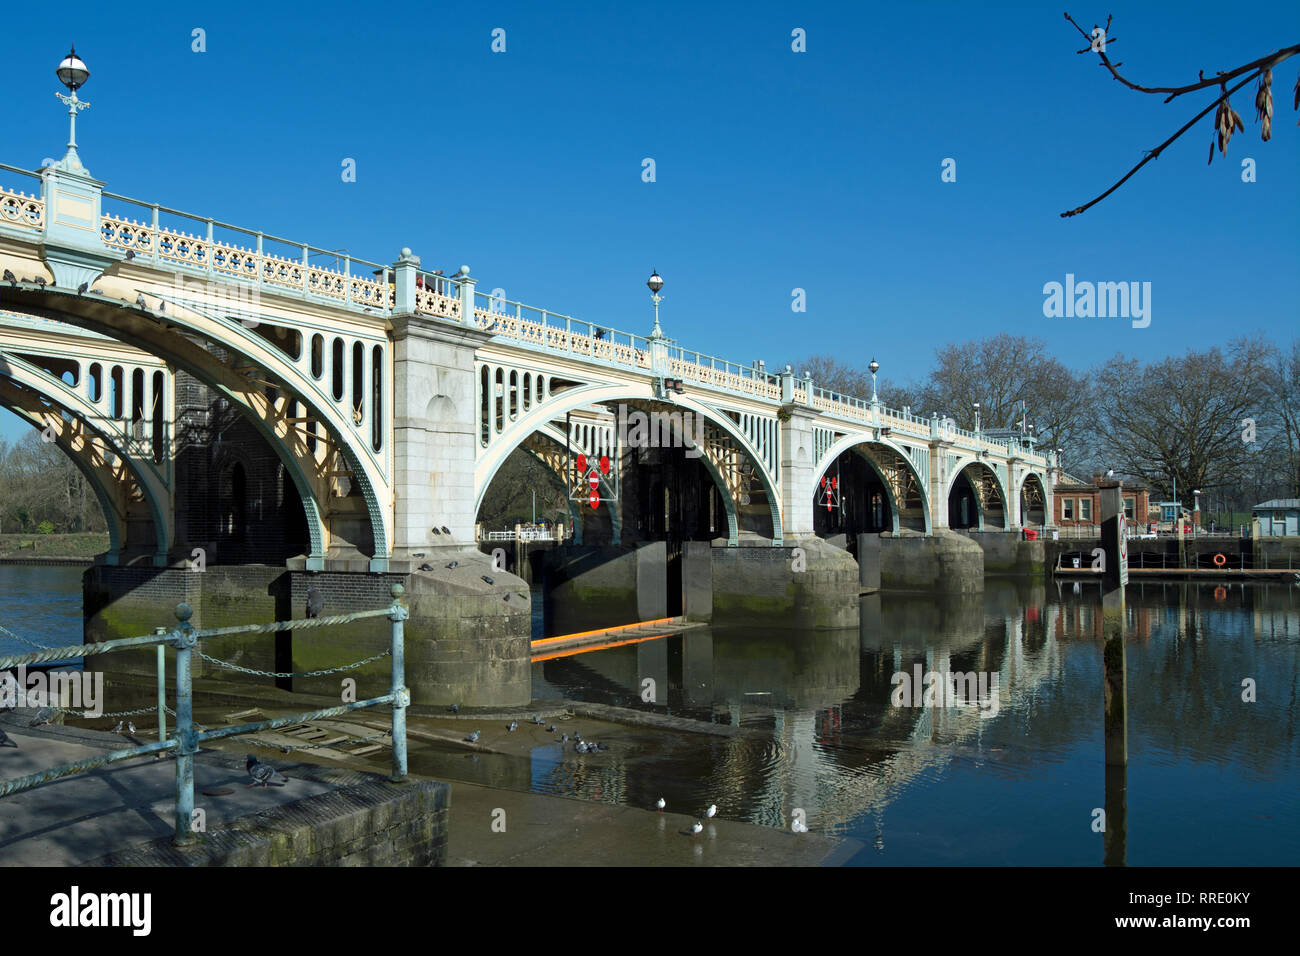 richmond lock footbridge reflected in the river thames at richmond, surrey, england Stock Photo